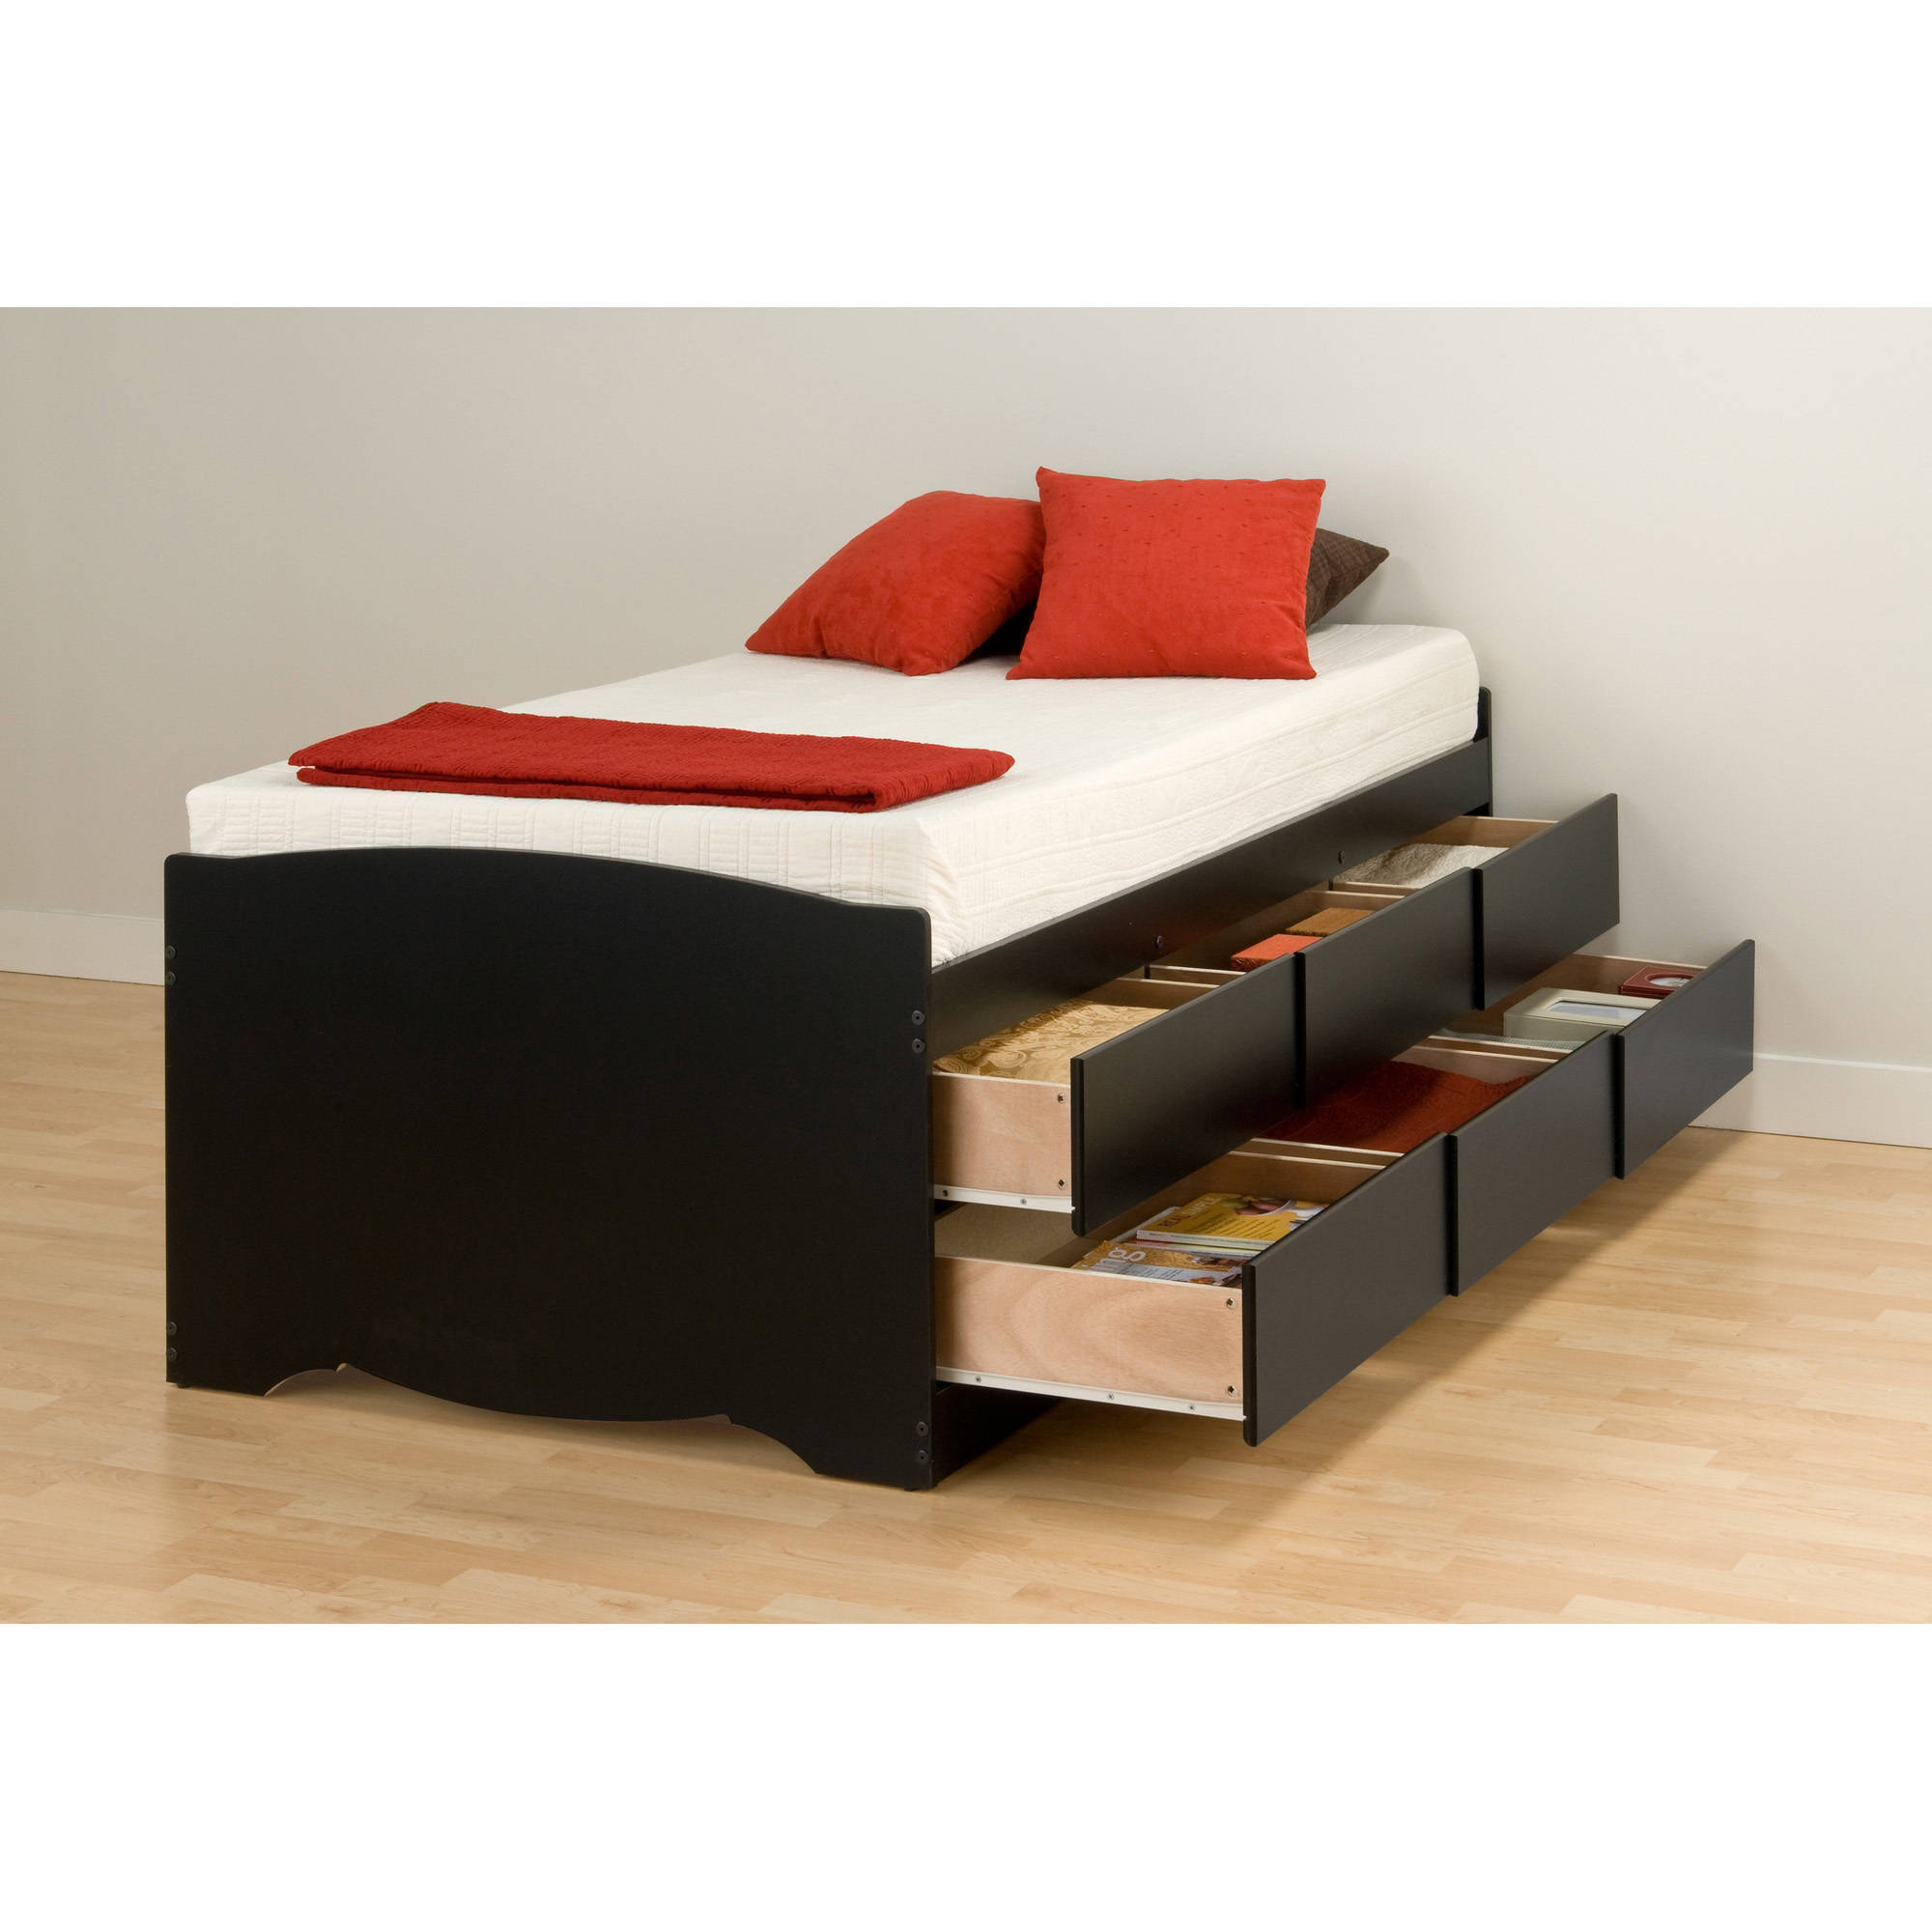 Captains beds black - Tall Twin Captain S Platform Storage Bed With 6 Drawers Black Box 1 Of 2 Walmart Com